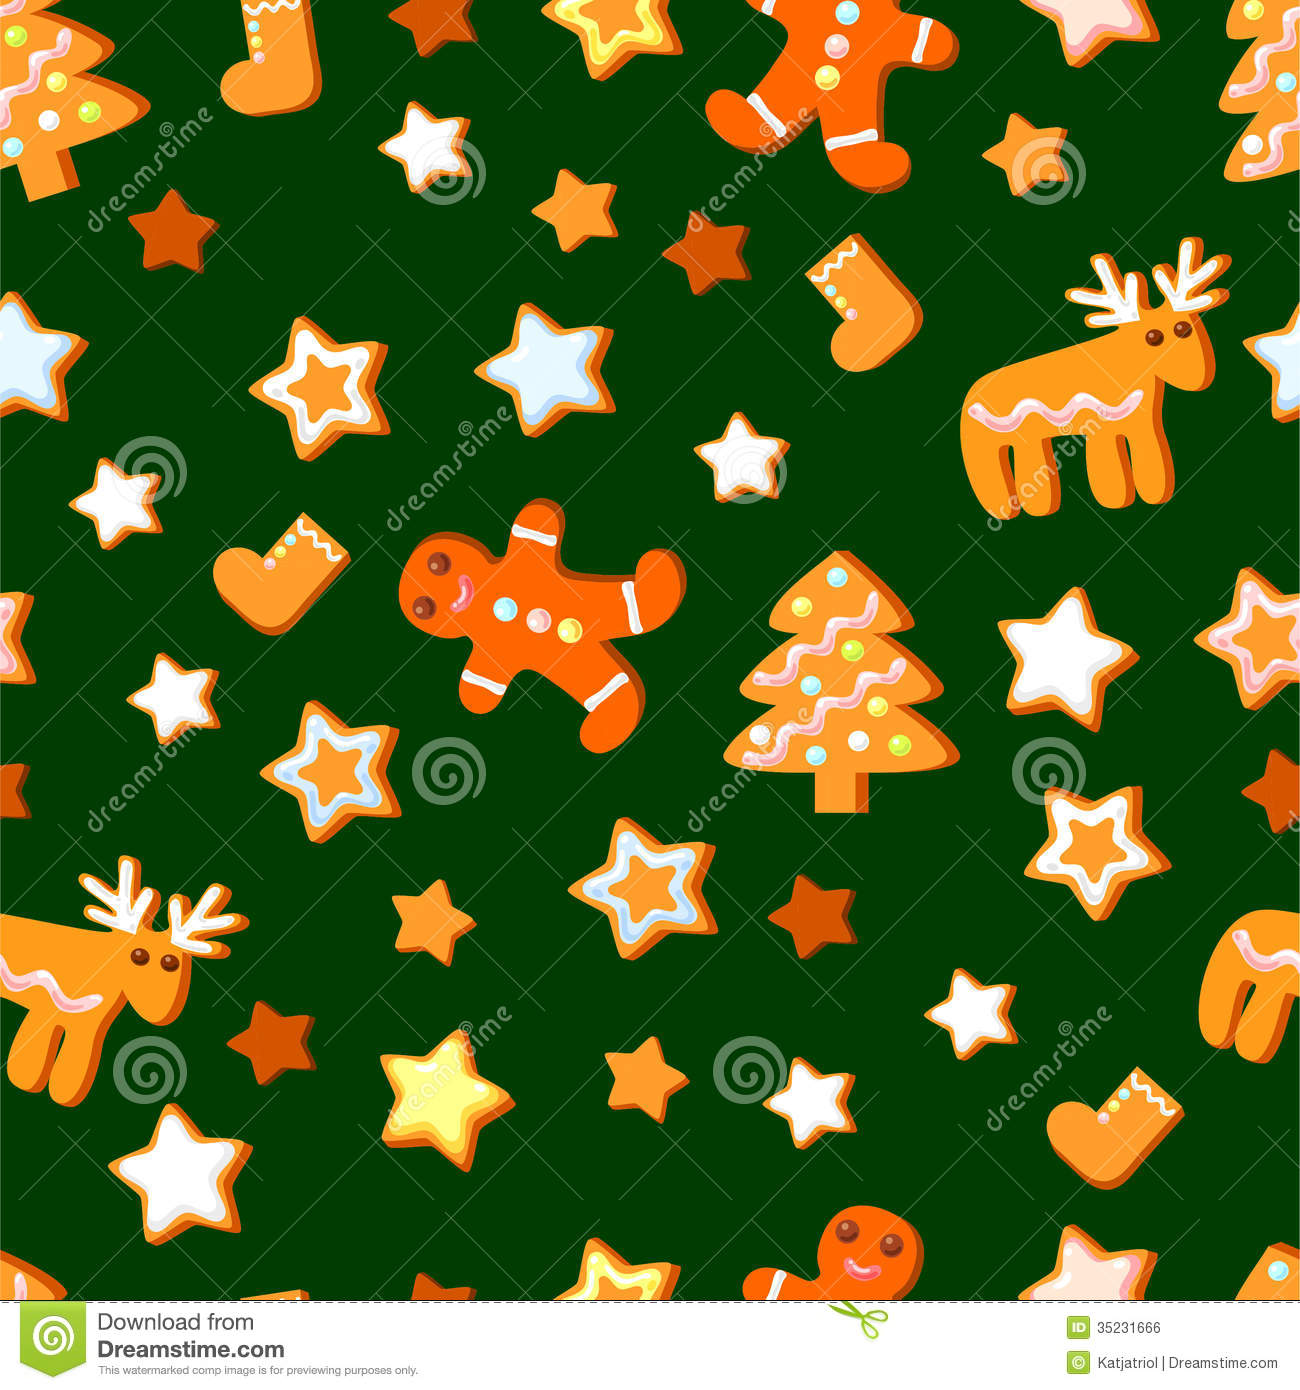 Seamlesspattern With Cute Christmas Cookie Royalty Free